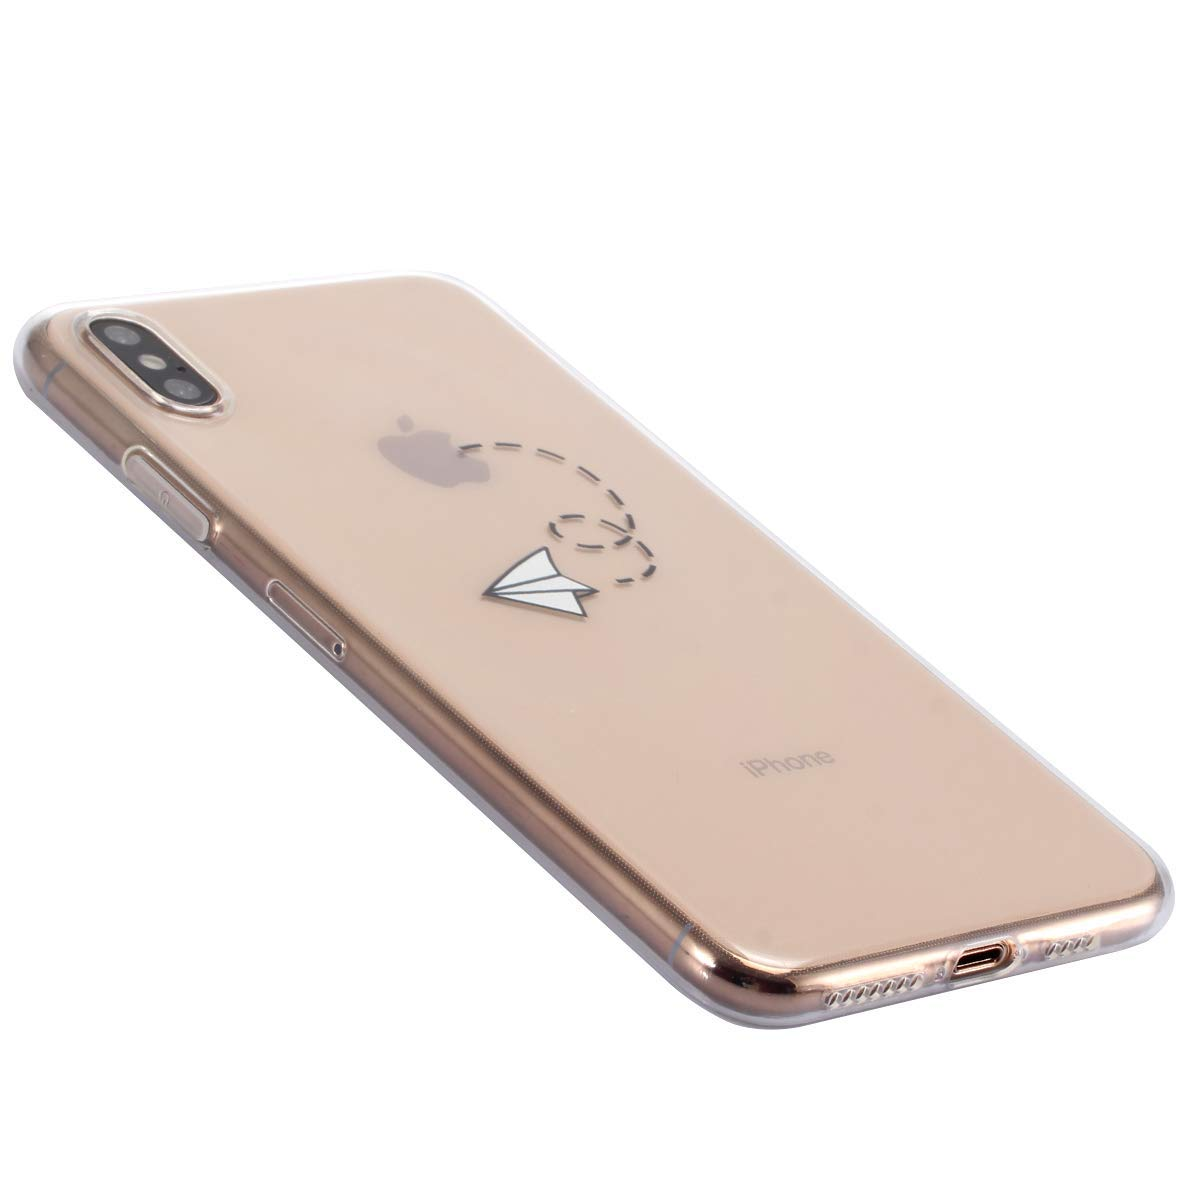 Luvfun Case for XR iPhone Coque pour iPhone-8